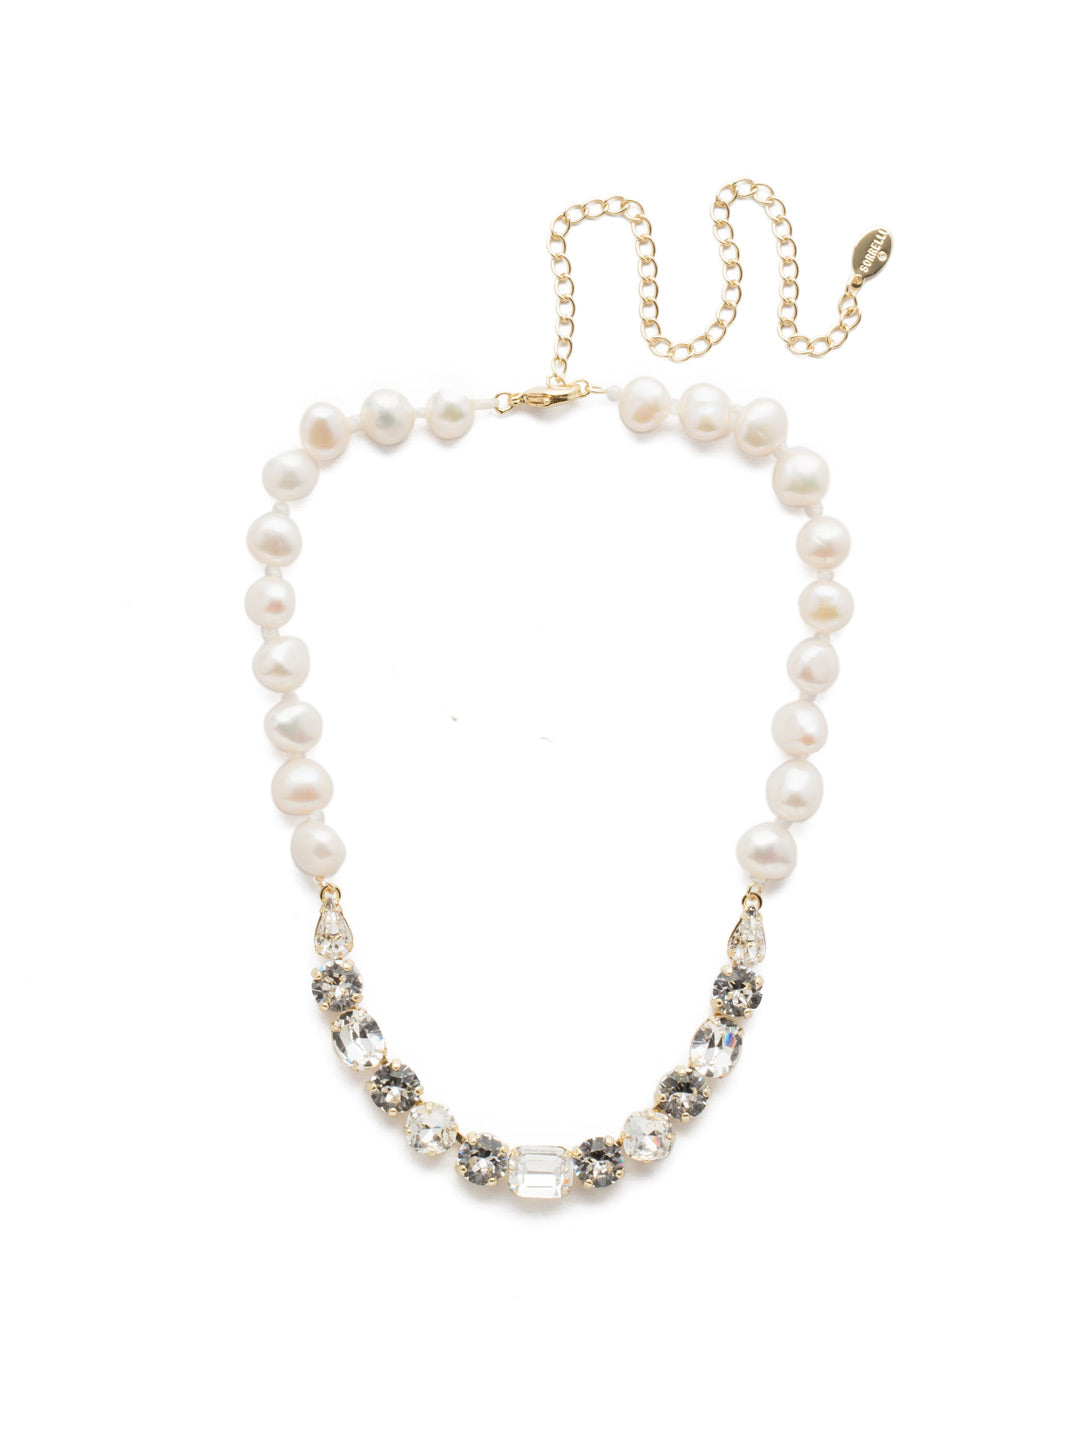 Cadenza Tennis Necklace - NEC14BGCRY